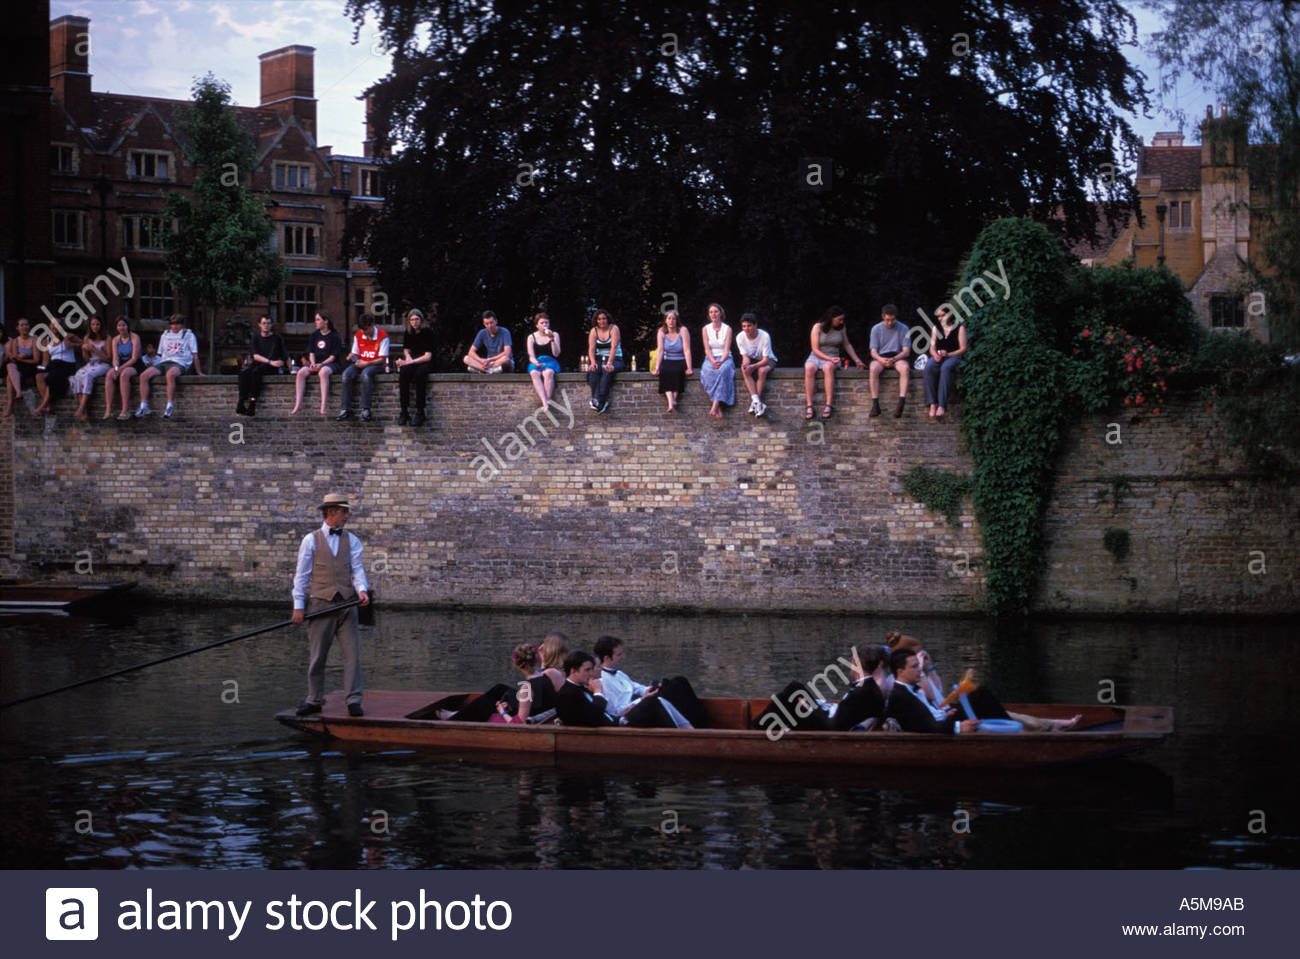 Guests arrive on punts for the Clare College May Ball overlooked by perhaps less affluent college undergraduates, Cambridge, UK - Stock Image